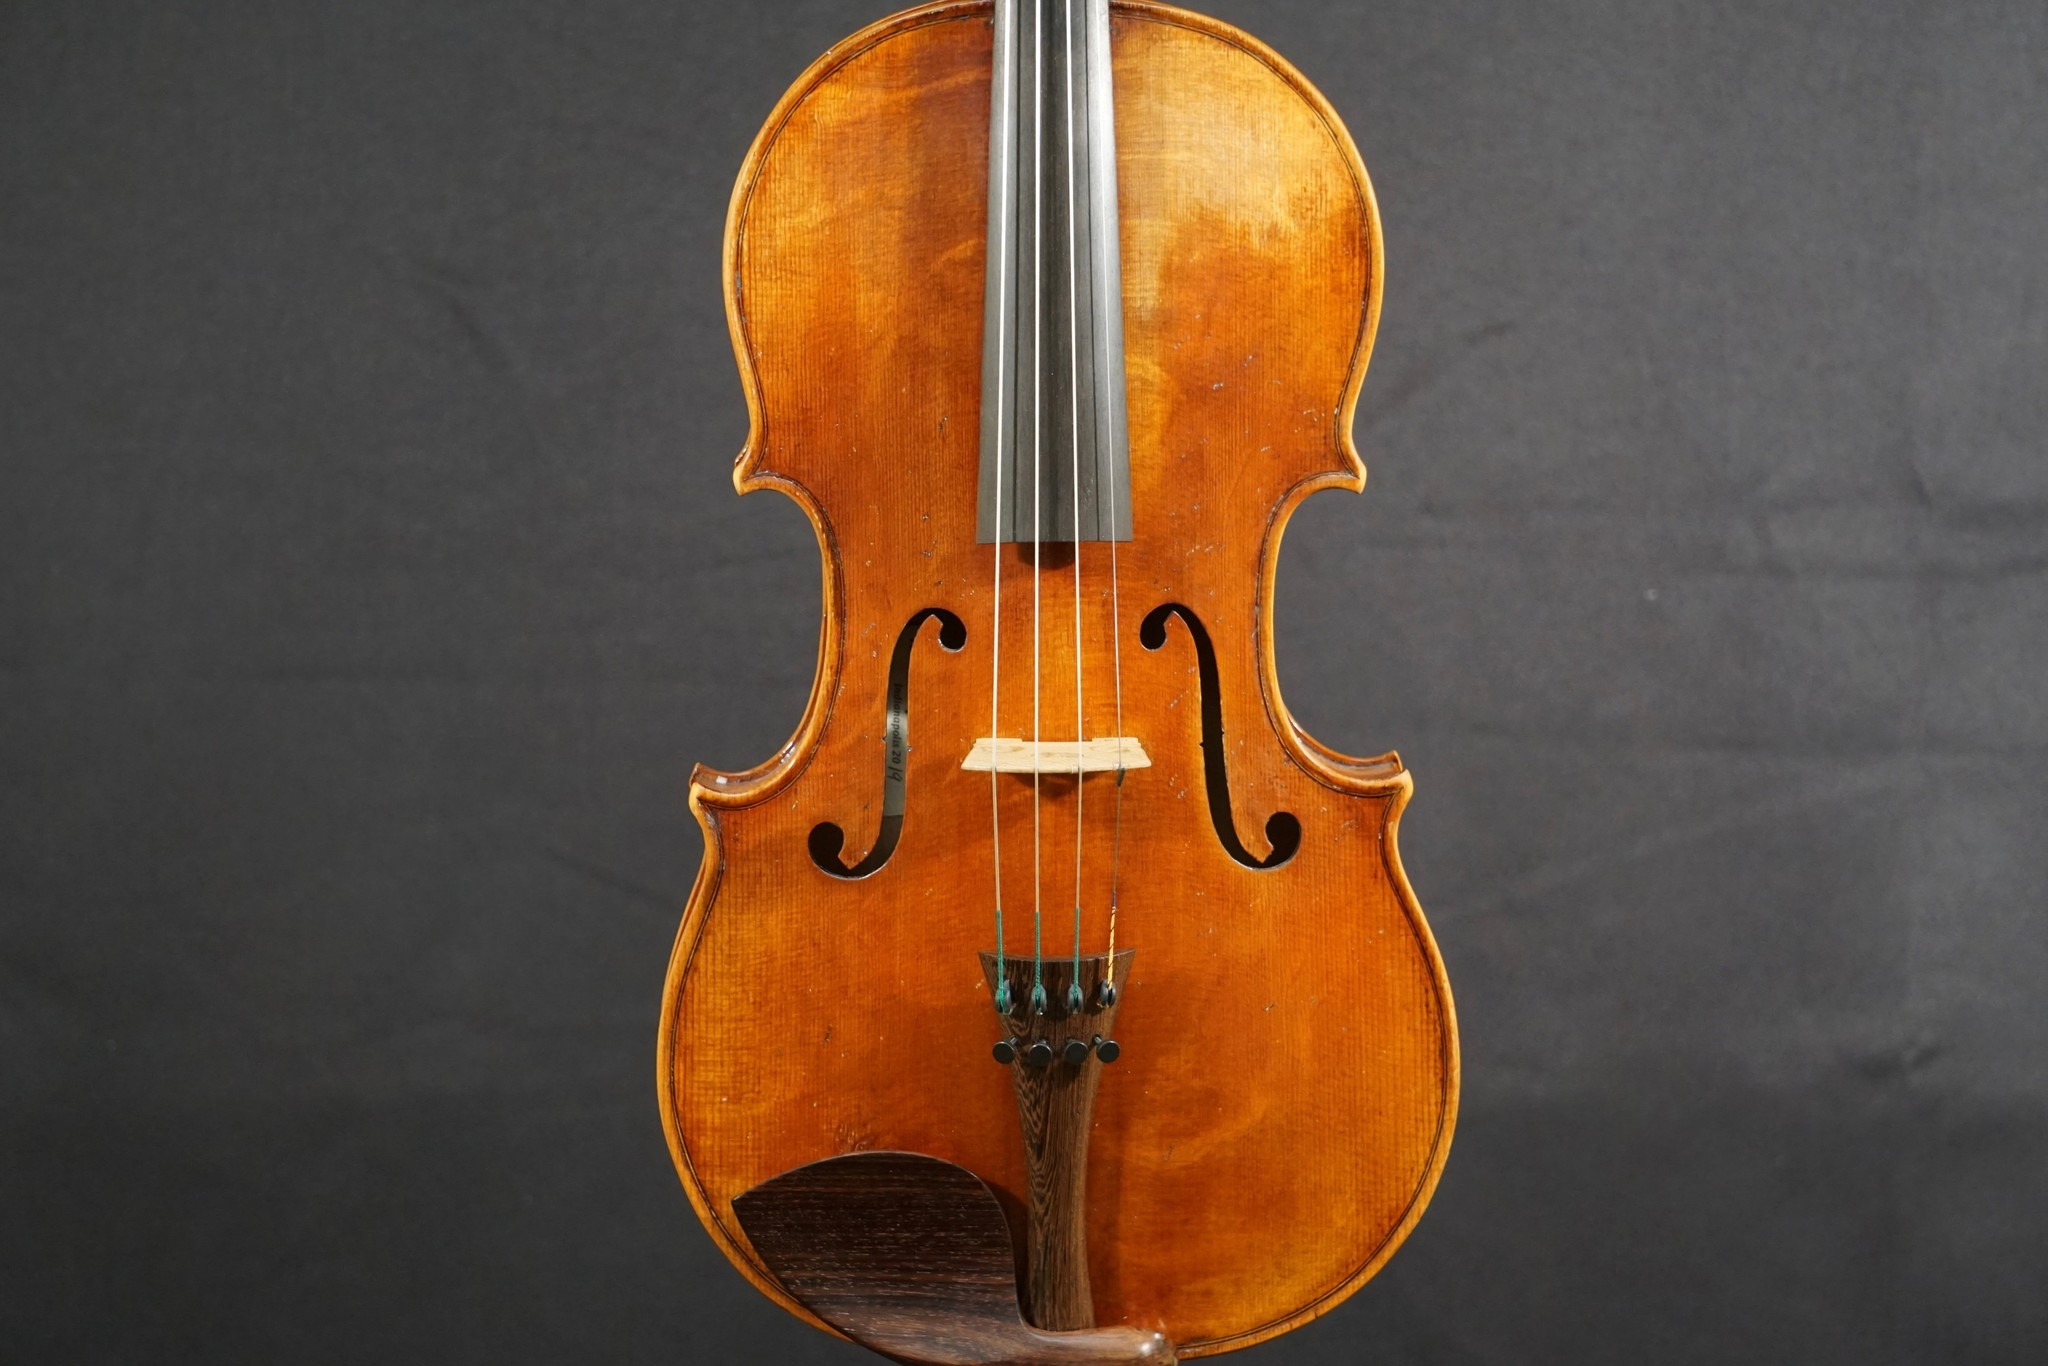 """16 3/8"""" A. Christopher Ulbricht viola, 2019, Indianapolis"""